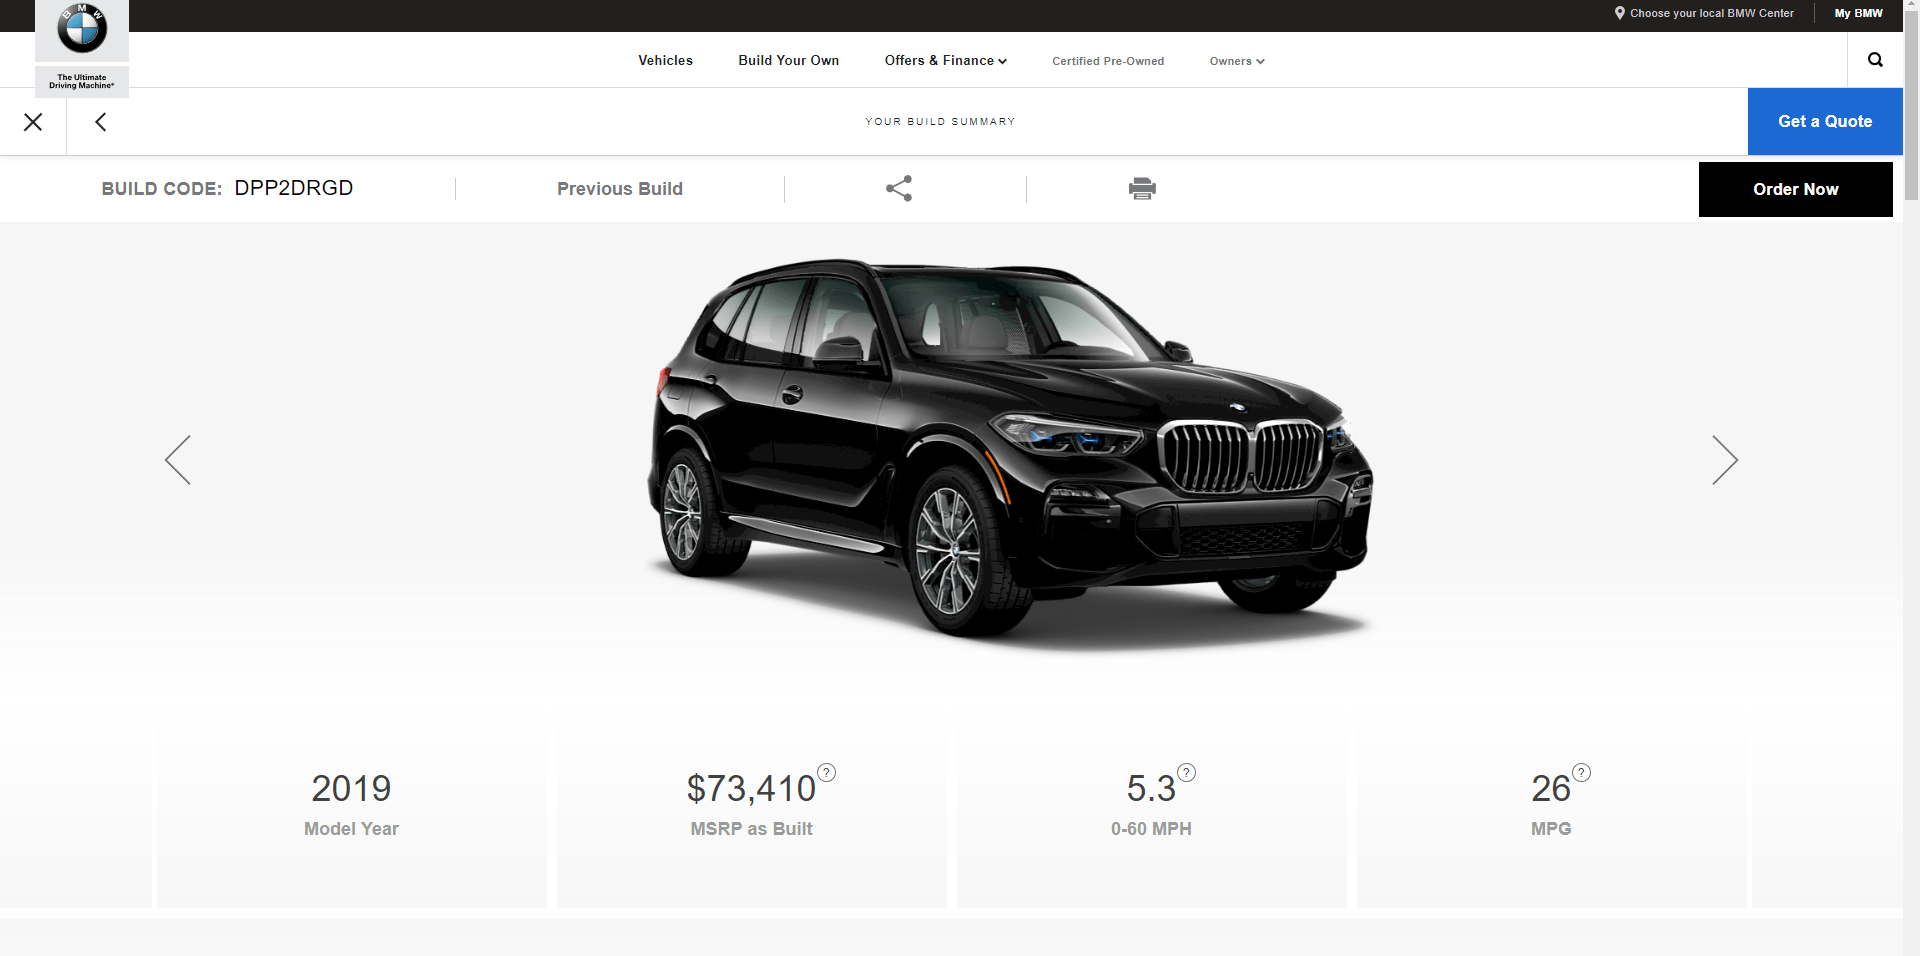 You can now configure the 2017 BMW 5 Series on BMW.de